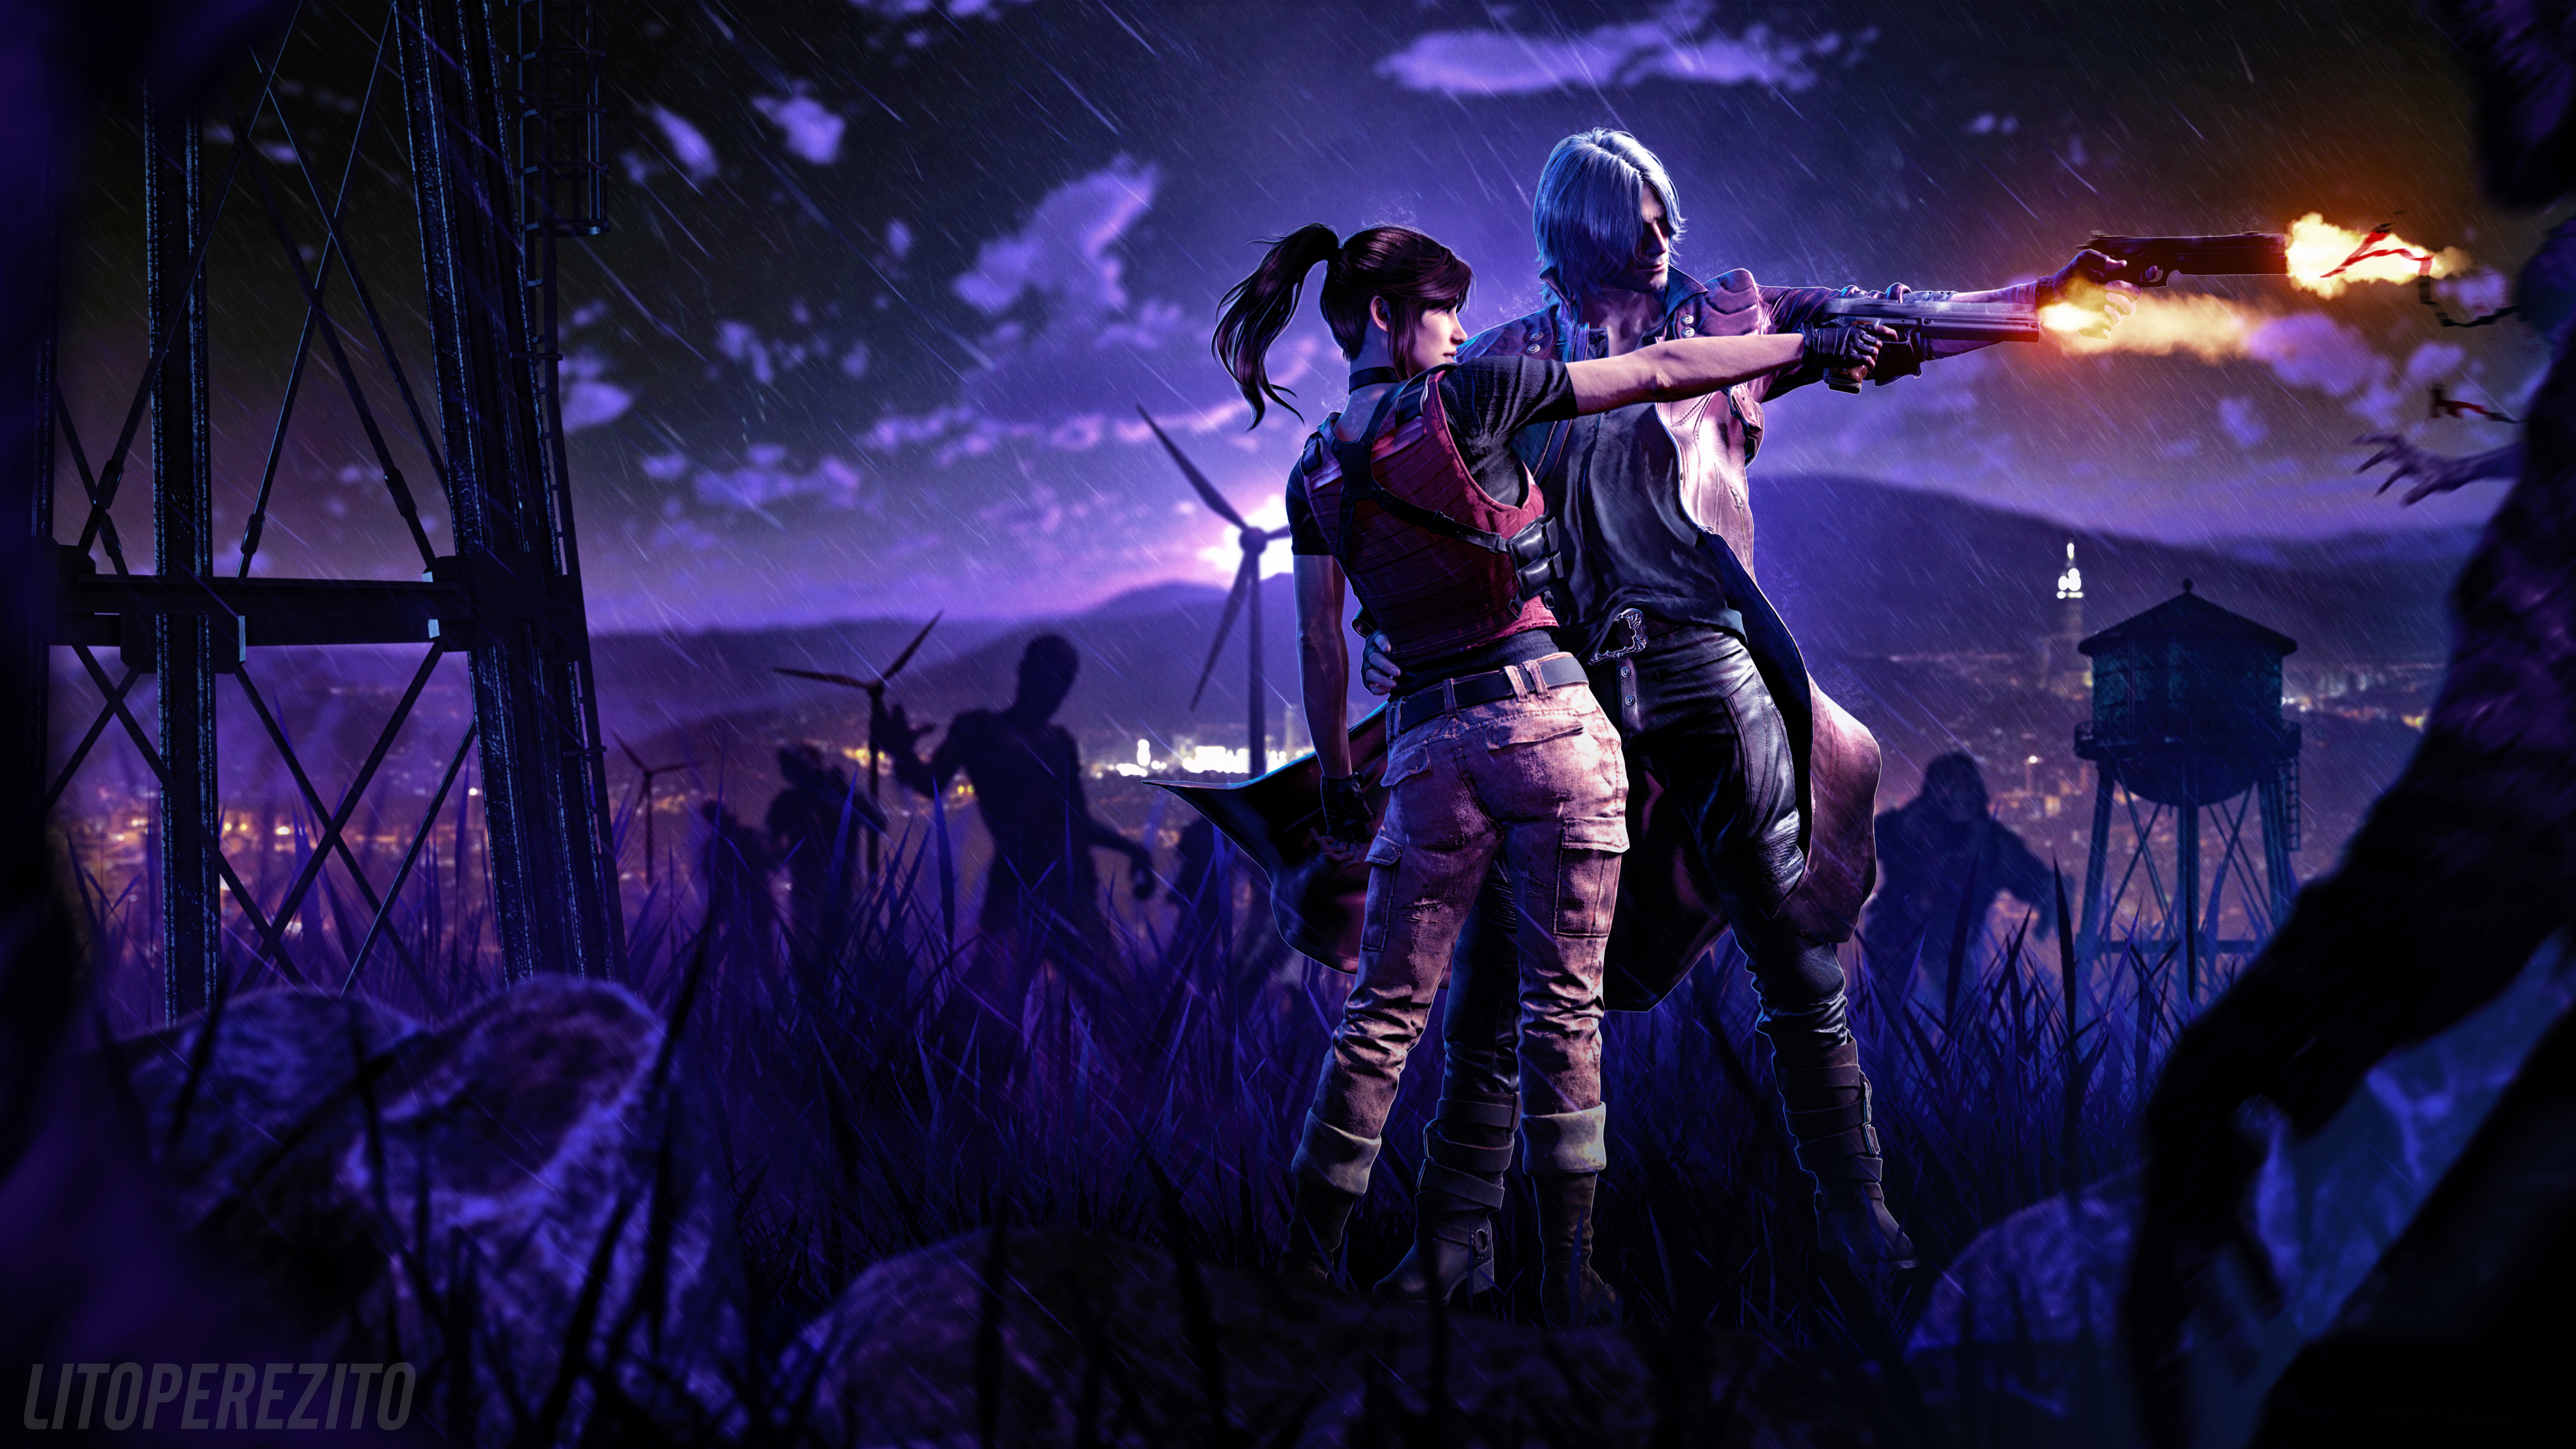 5k Resident Evil Devil May Cry 5 Wallpaper Hd Games 4k Wallpapers